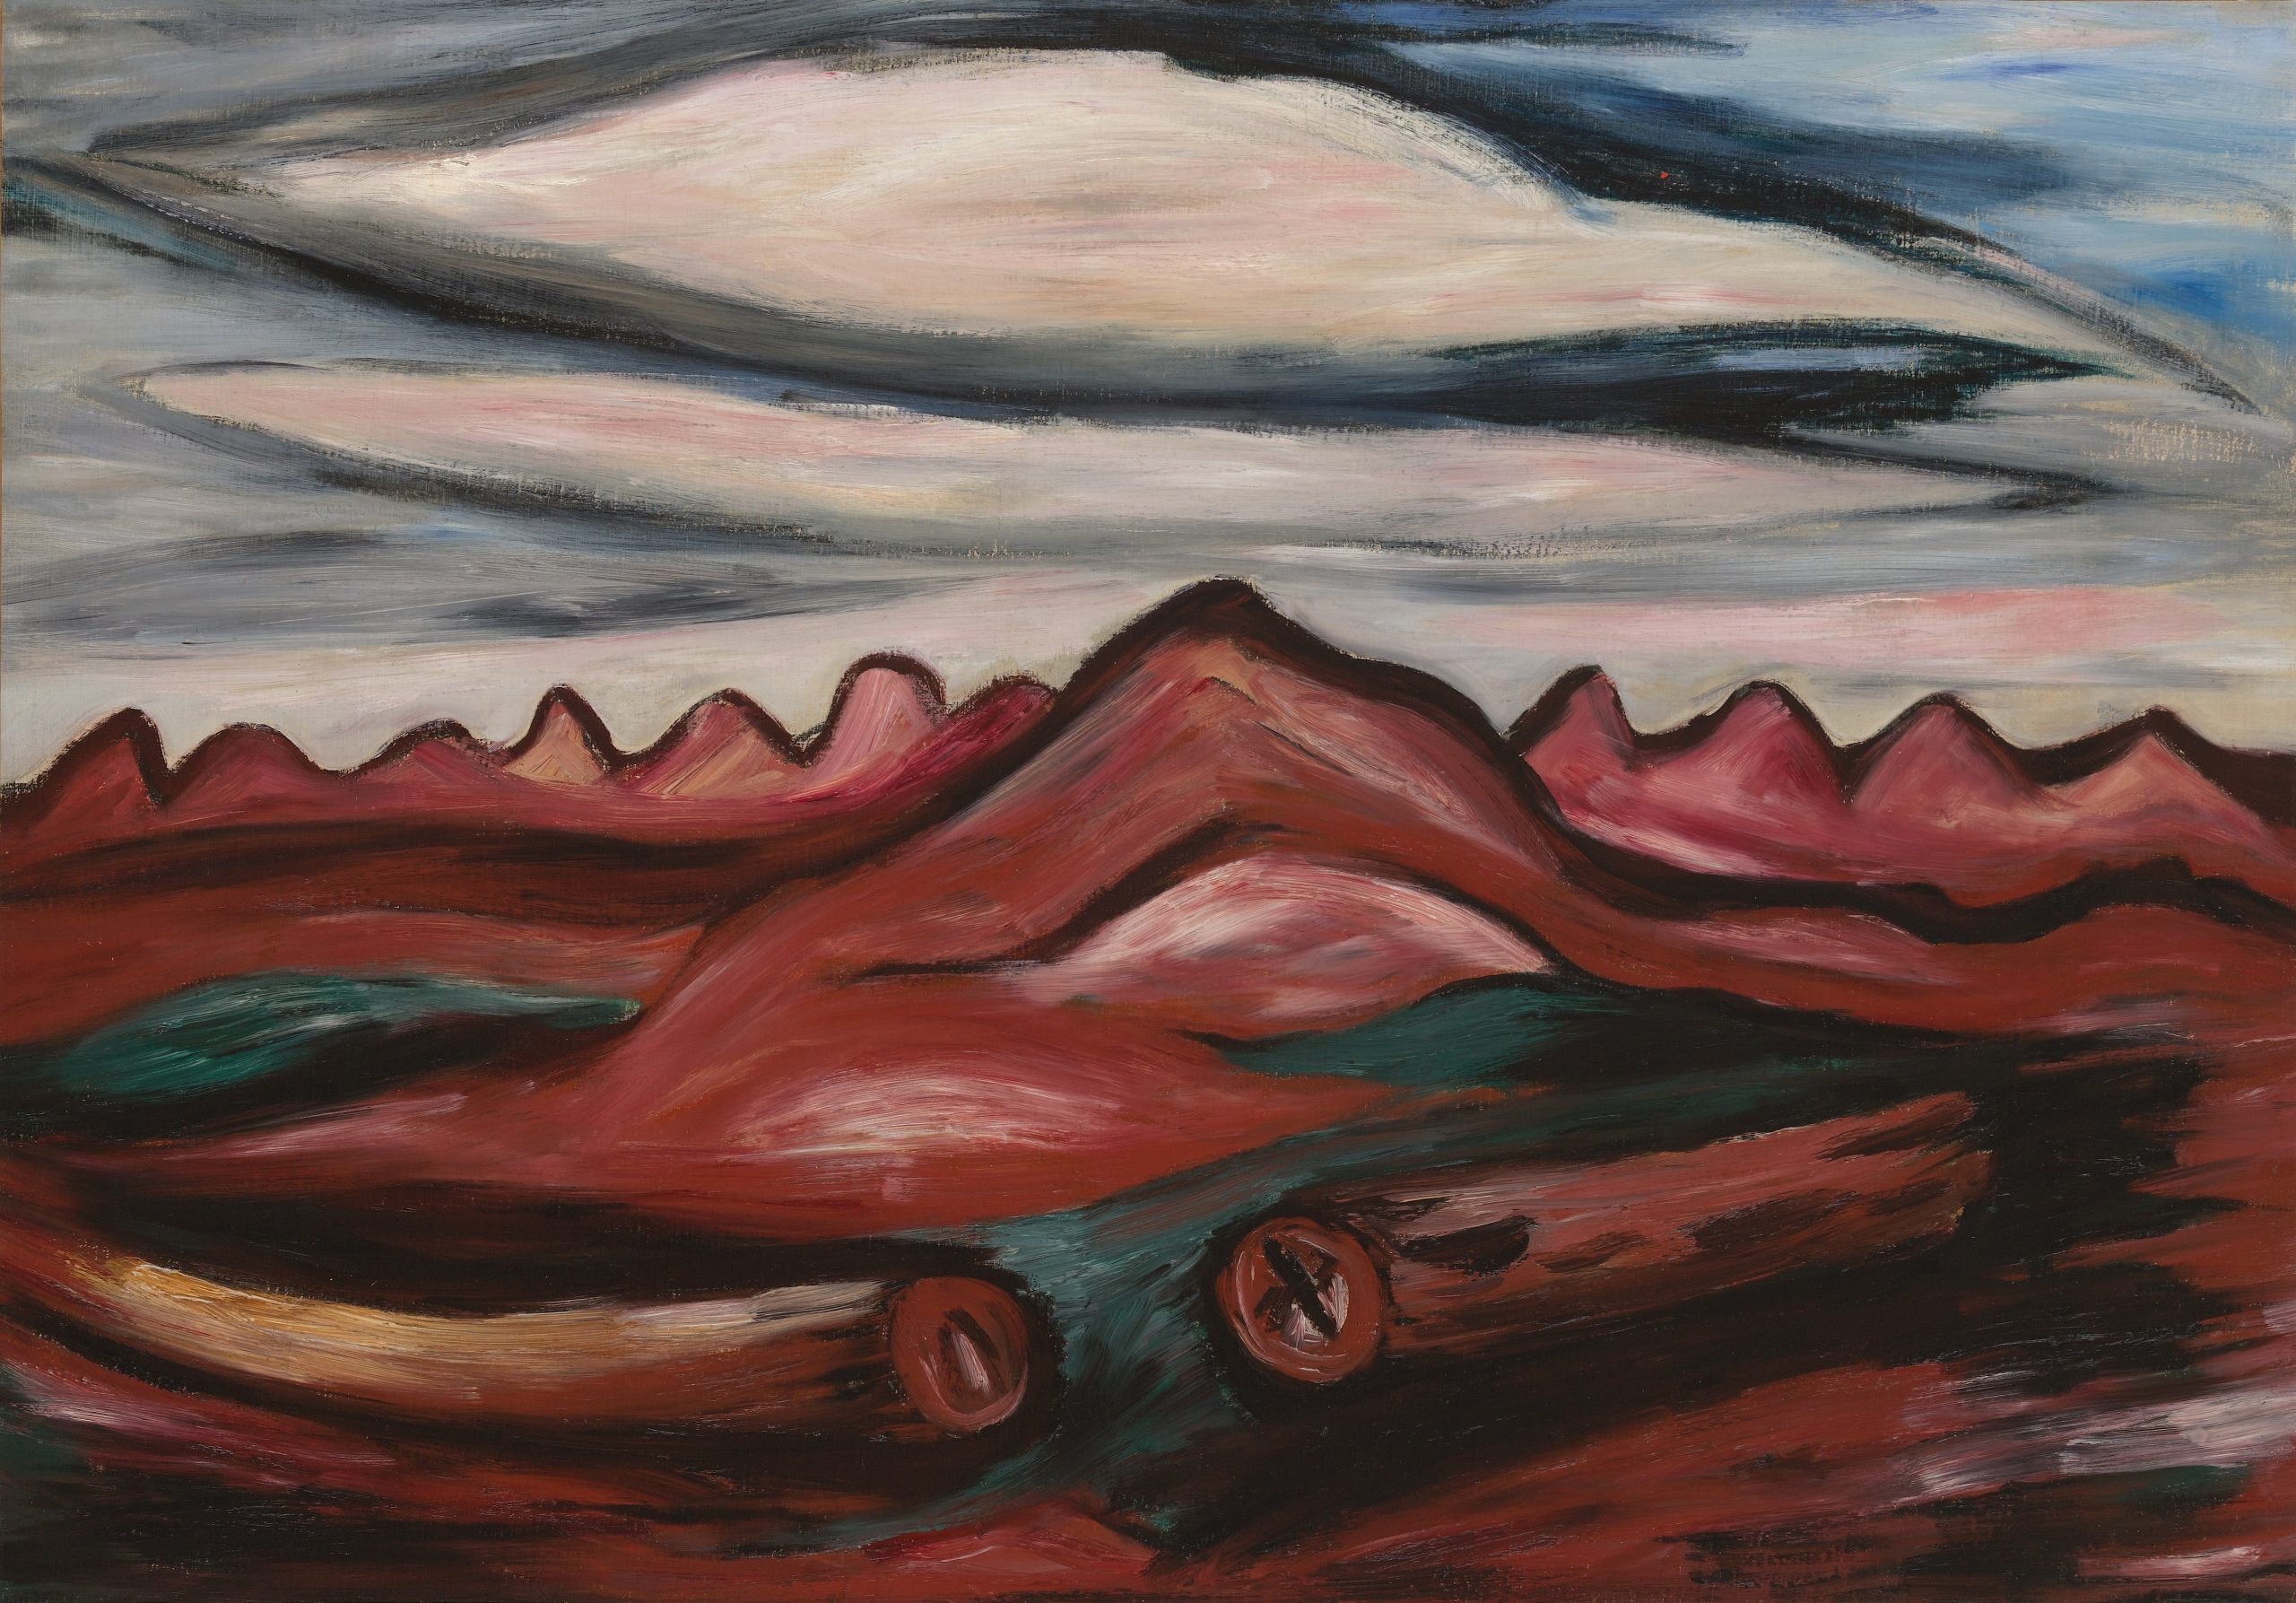 Landscape of red hills under a cloudy sky. A large hill at the center with two fallen logs lying on the ground in front.